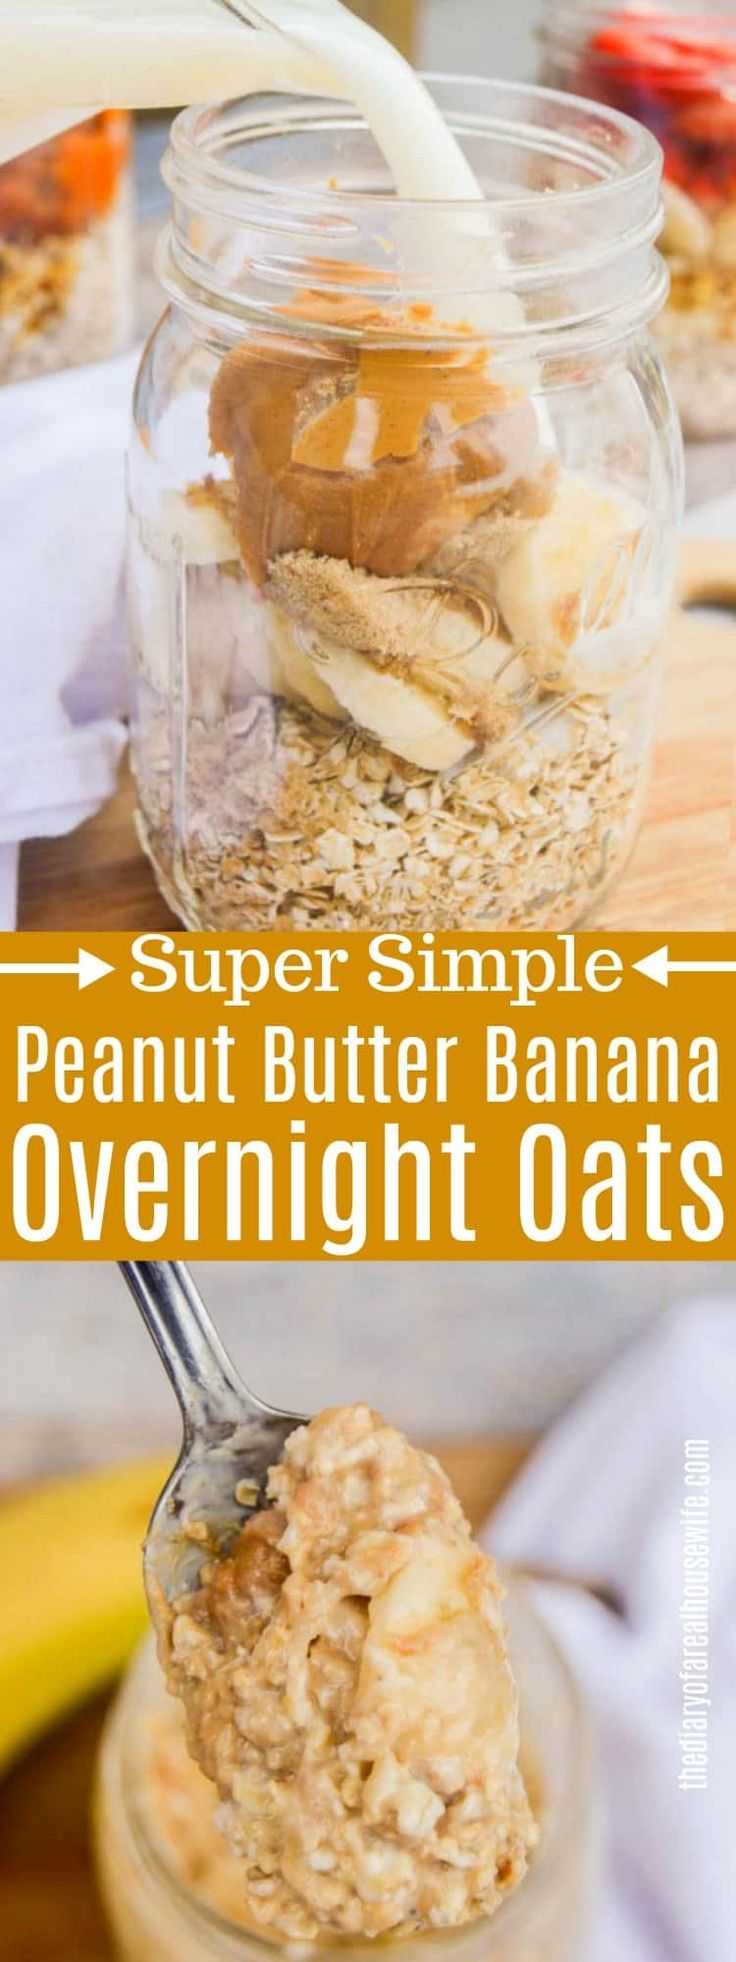 Peanut Butter Banana Overnight Oats • The Diary …